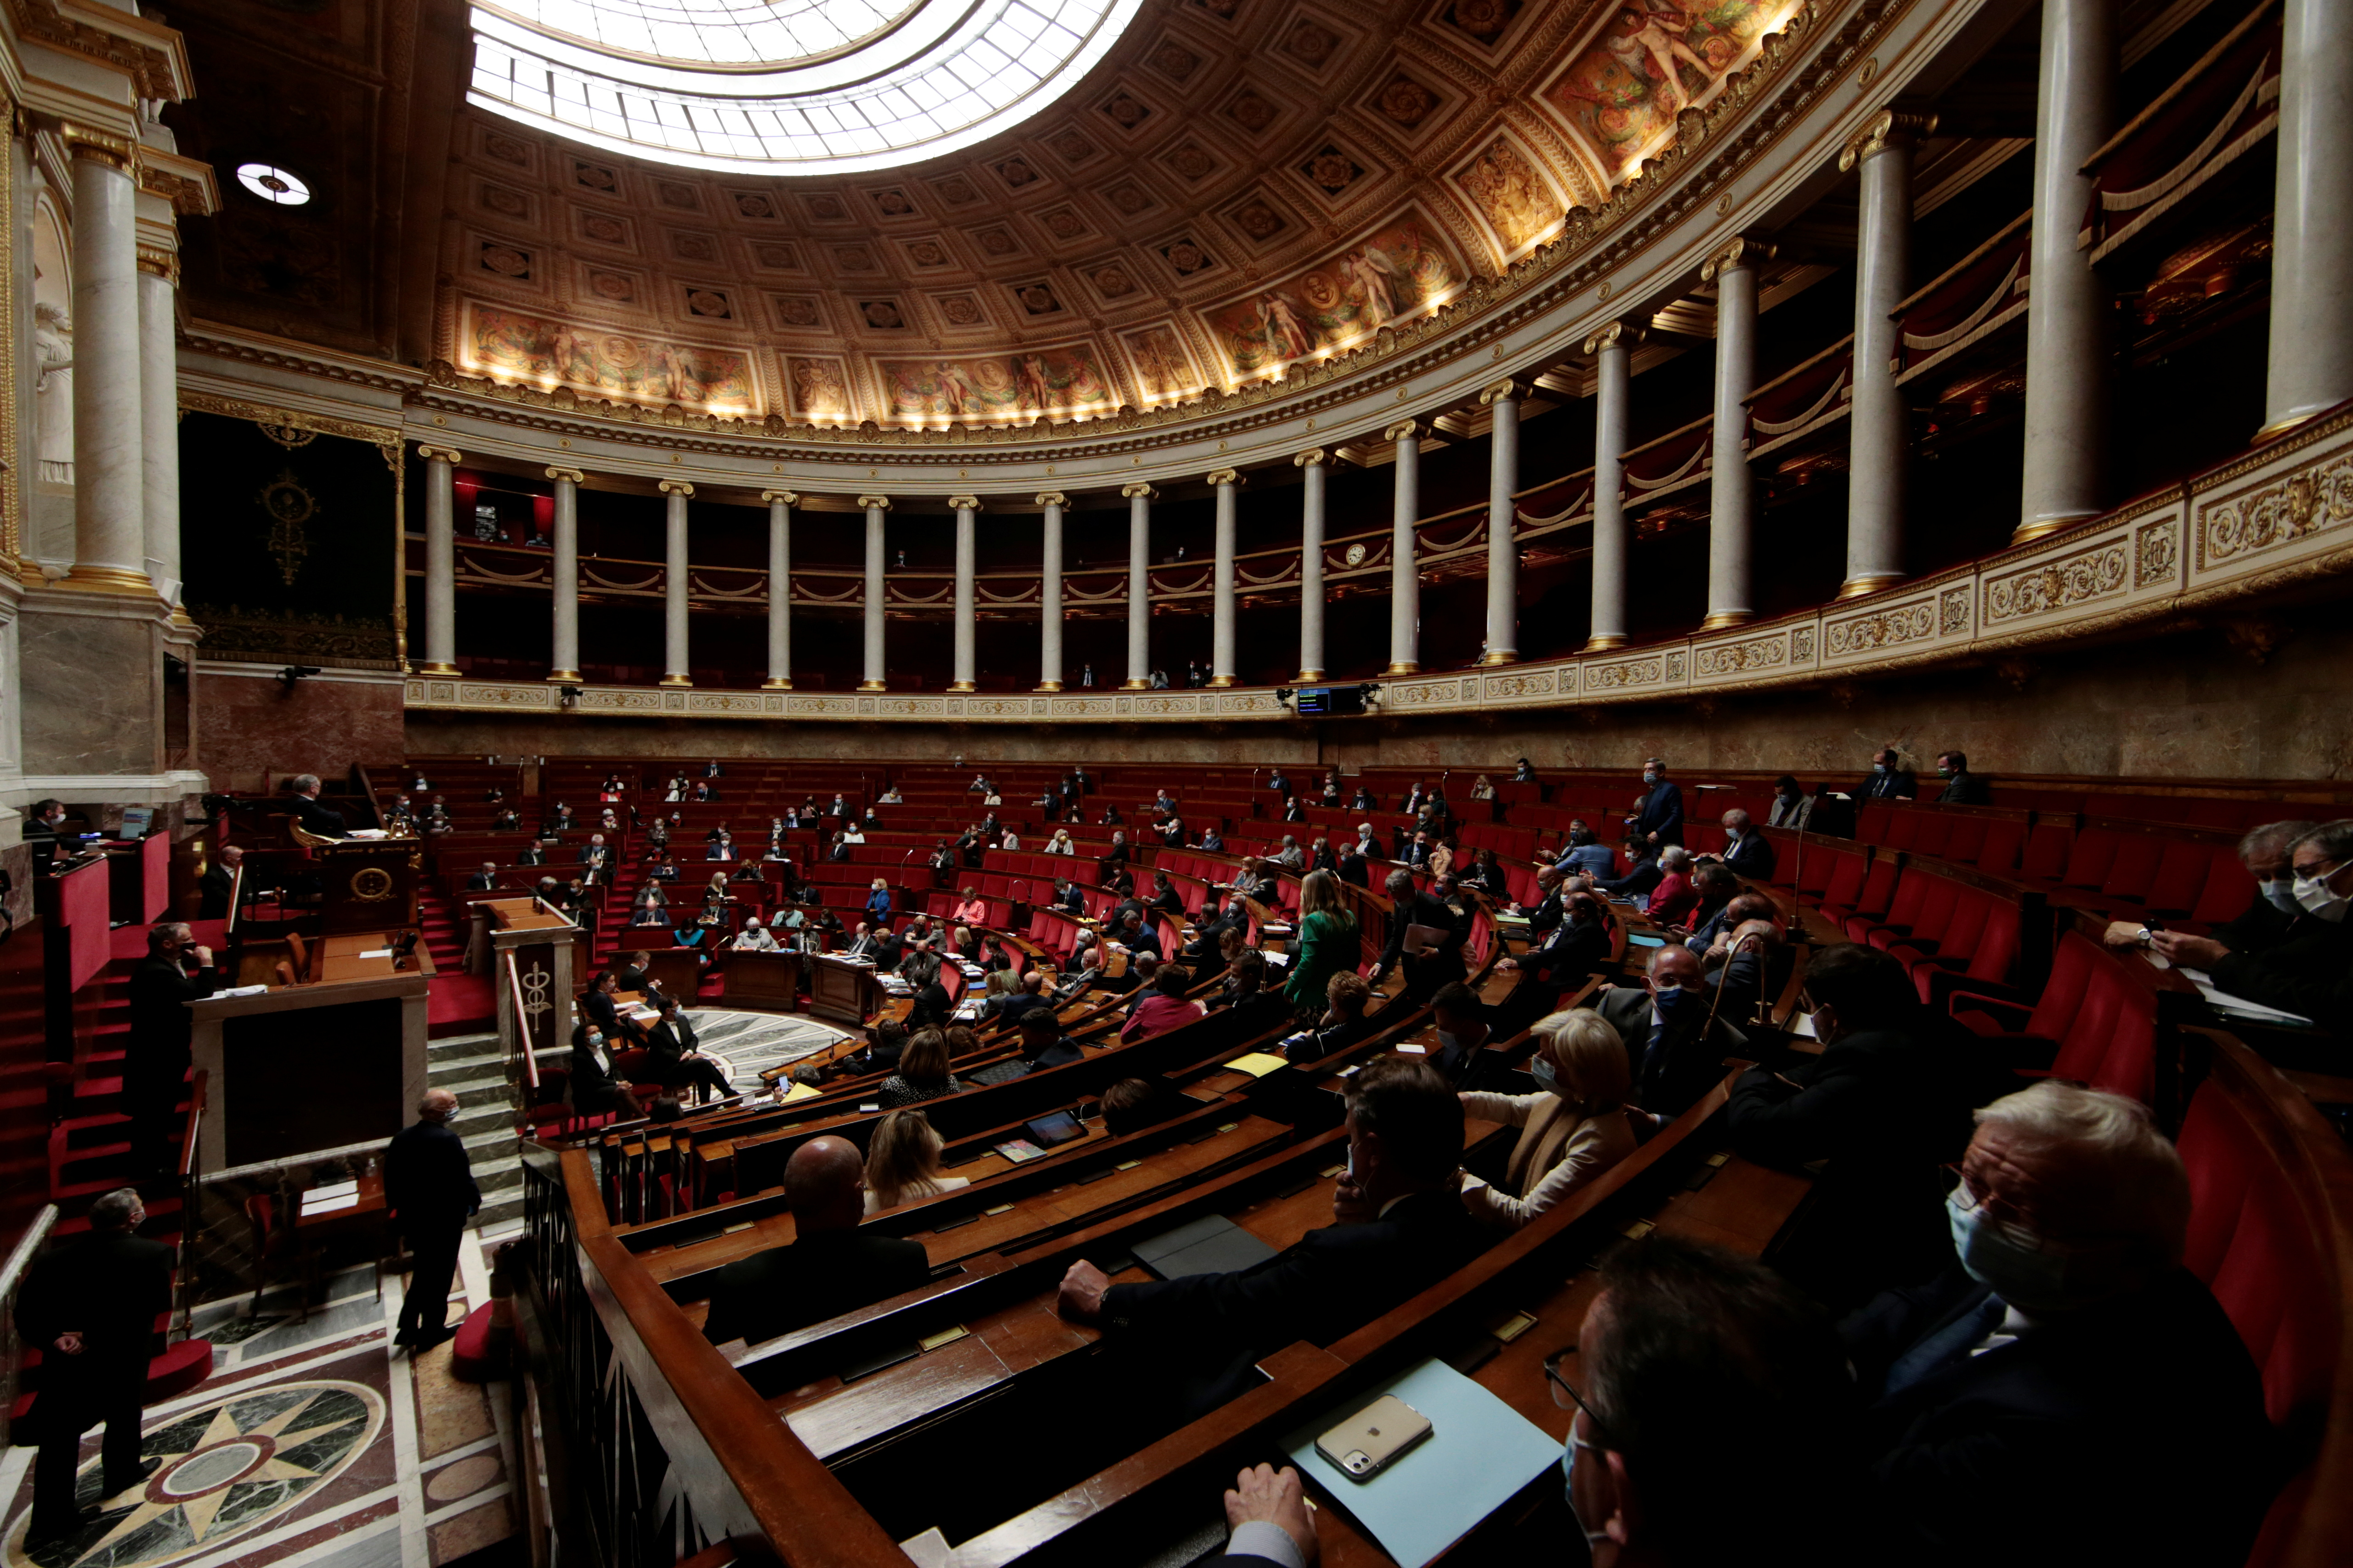 A general view shows the hemicycle during the questions to the government session before a final vote on controversial climate change bill at the National Assembly in Paris, France, May 4, 2021. REUTERS/Sarah Meyssonnier